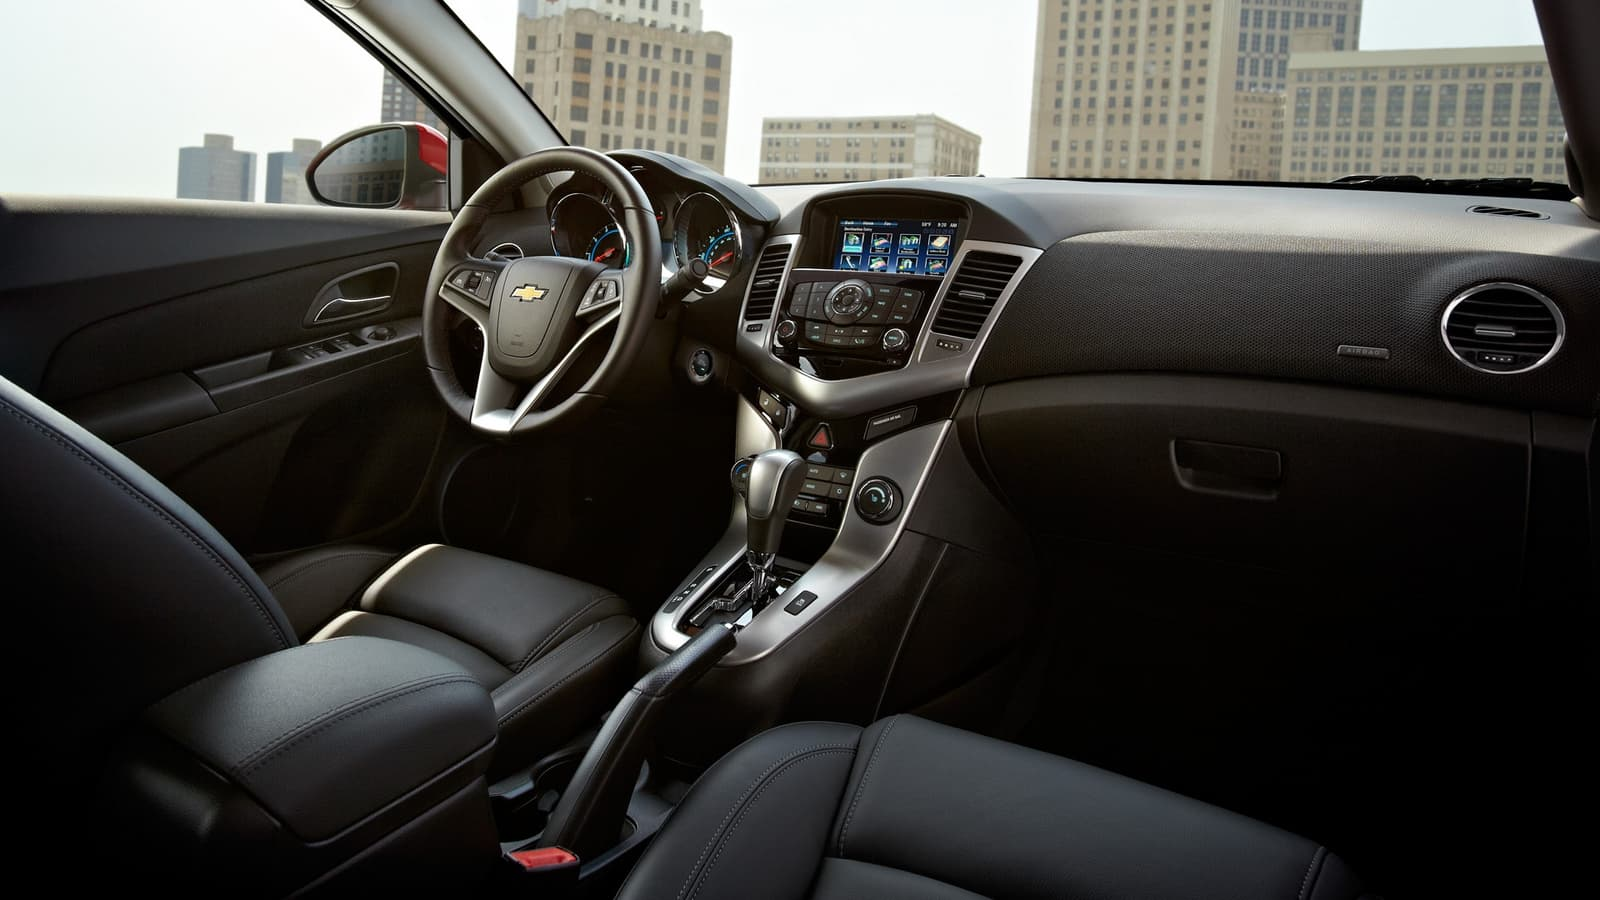 30 chevrolet cruze wallpapers hd high quality free download. Black Bedroom Furniture Sets. Home Design Ideas